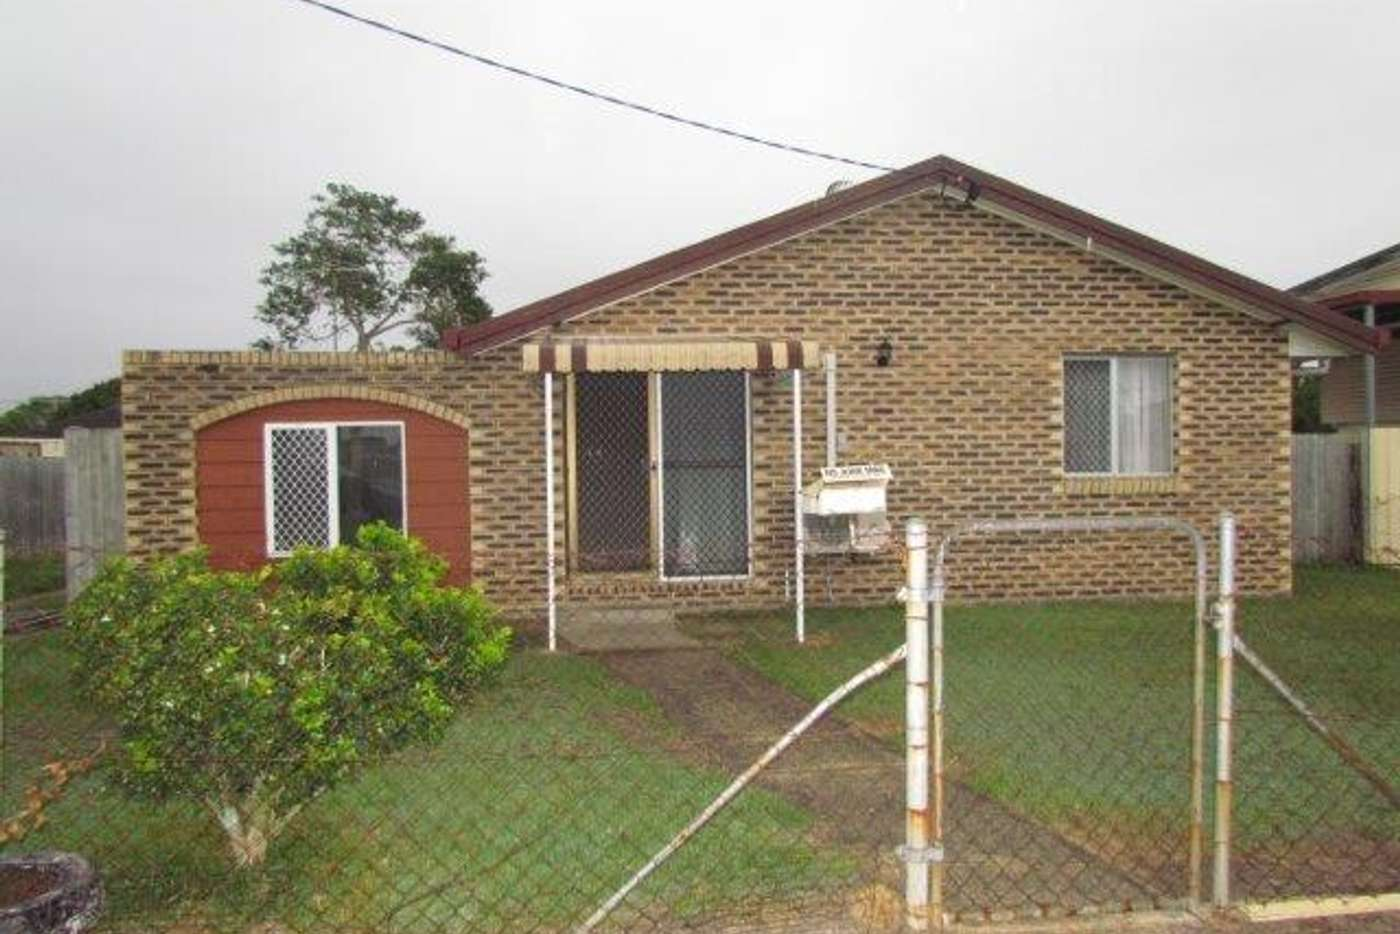 Main view of Homely house listing, 11 Kerwalli Street, Deception Bay QLD 4508